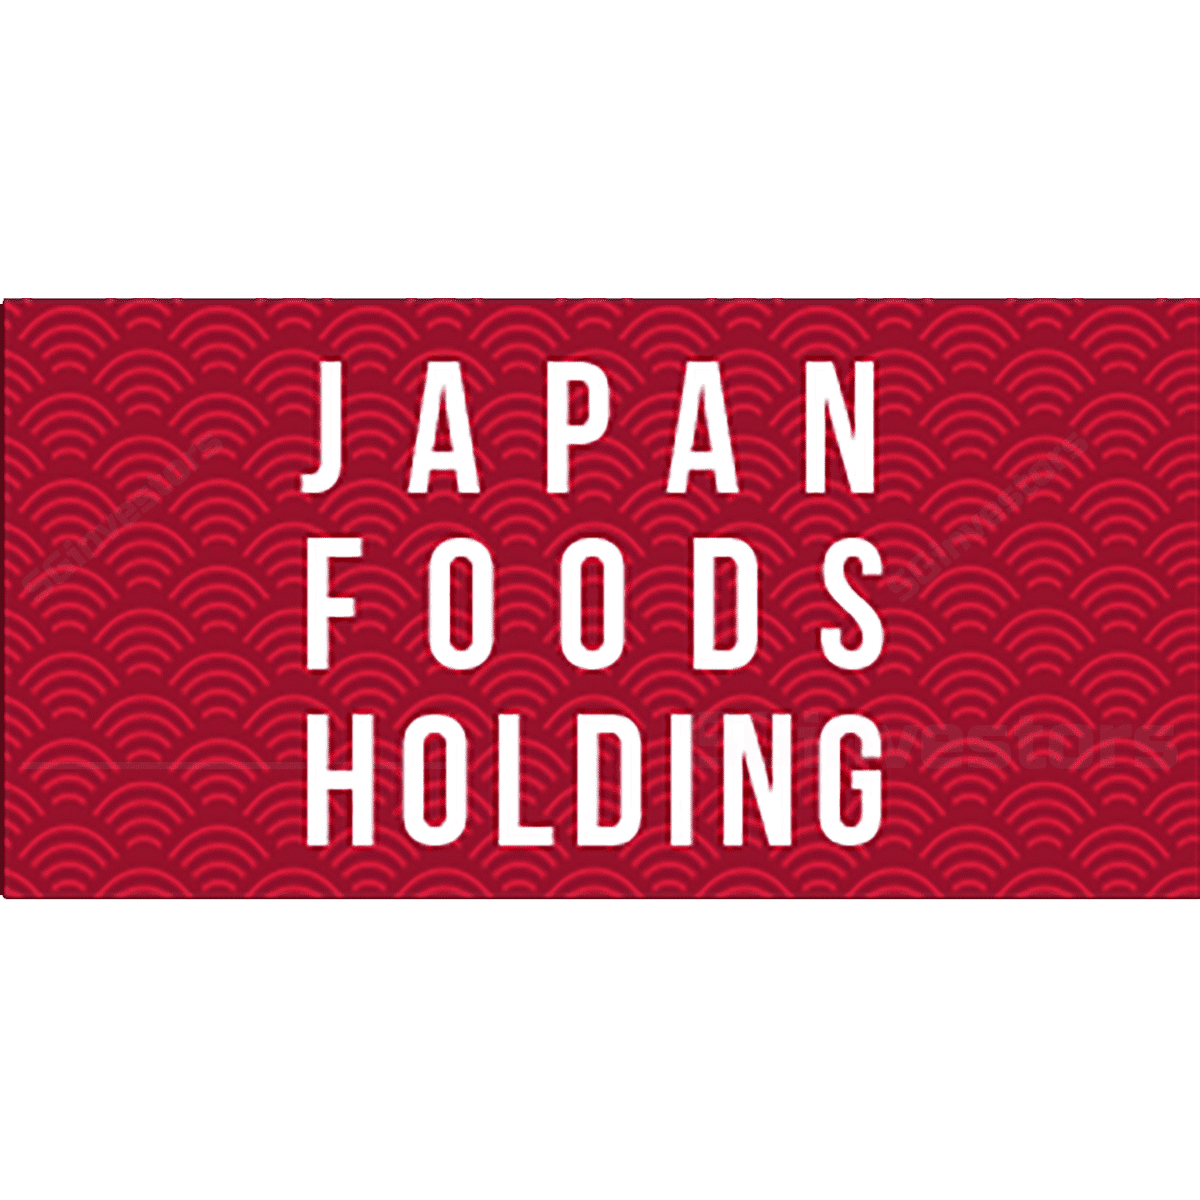 Japan Foods Holding - RHB Invest 2018-05-10: Strong Fy18 Results